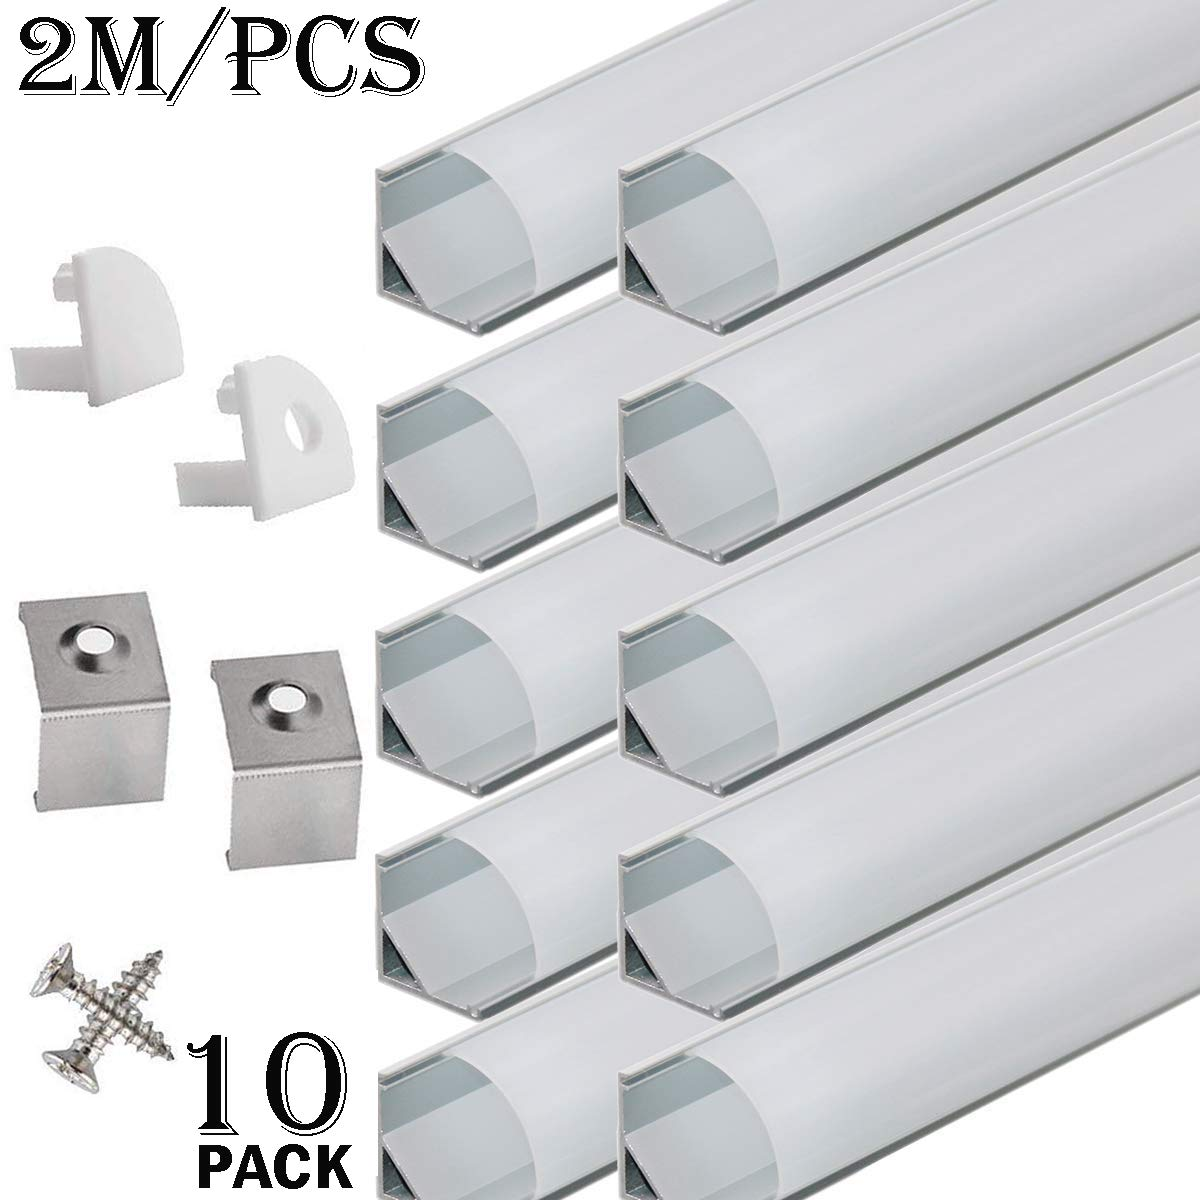 StarlandLed 10-Pack 6.6FT/2 Meter LED Aluminum Channel V-Shape, LED Profile with End Caps and Mounting Clips for LED Strip Light Mounting by StarlandLed